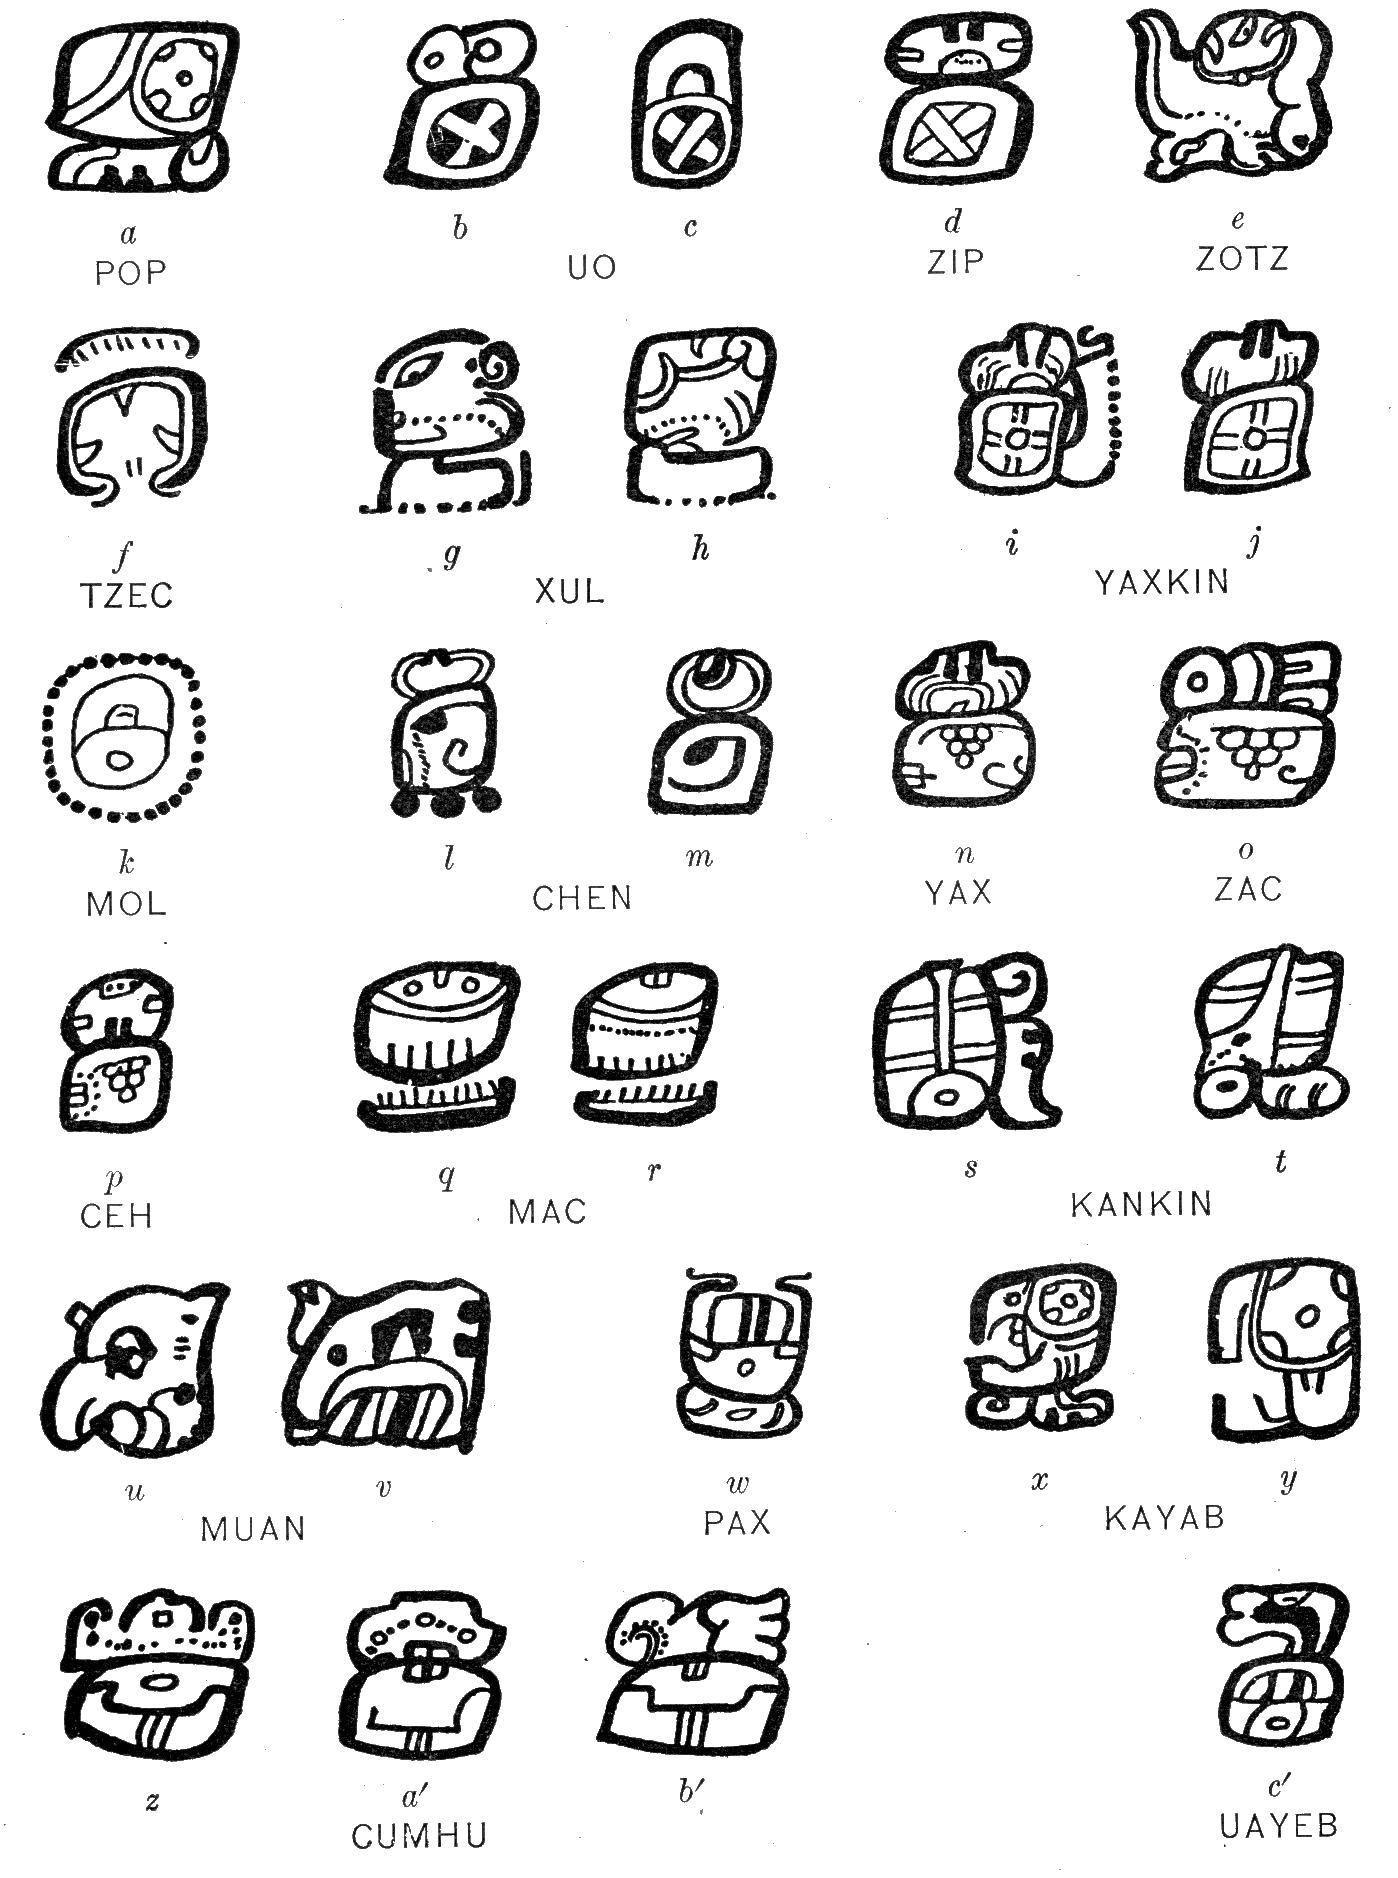 an introduction to the mythology of the mayans the american indian people in southern mexico Learn more about how the mayan calendar works aztec, olmec, teotihuacan and toltec the mayans lived in what are today guatemala, belize, honduras, el salvador and southern mexico (yucatan they also inscribed their religious beliefs and mythology on pottery the mayans placed great.